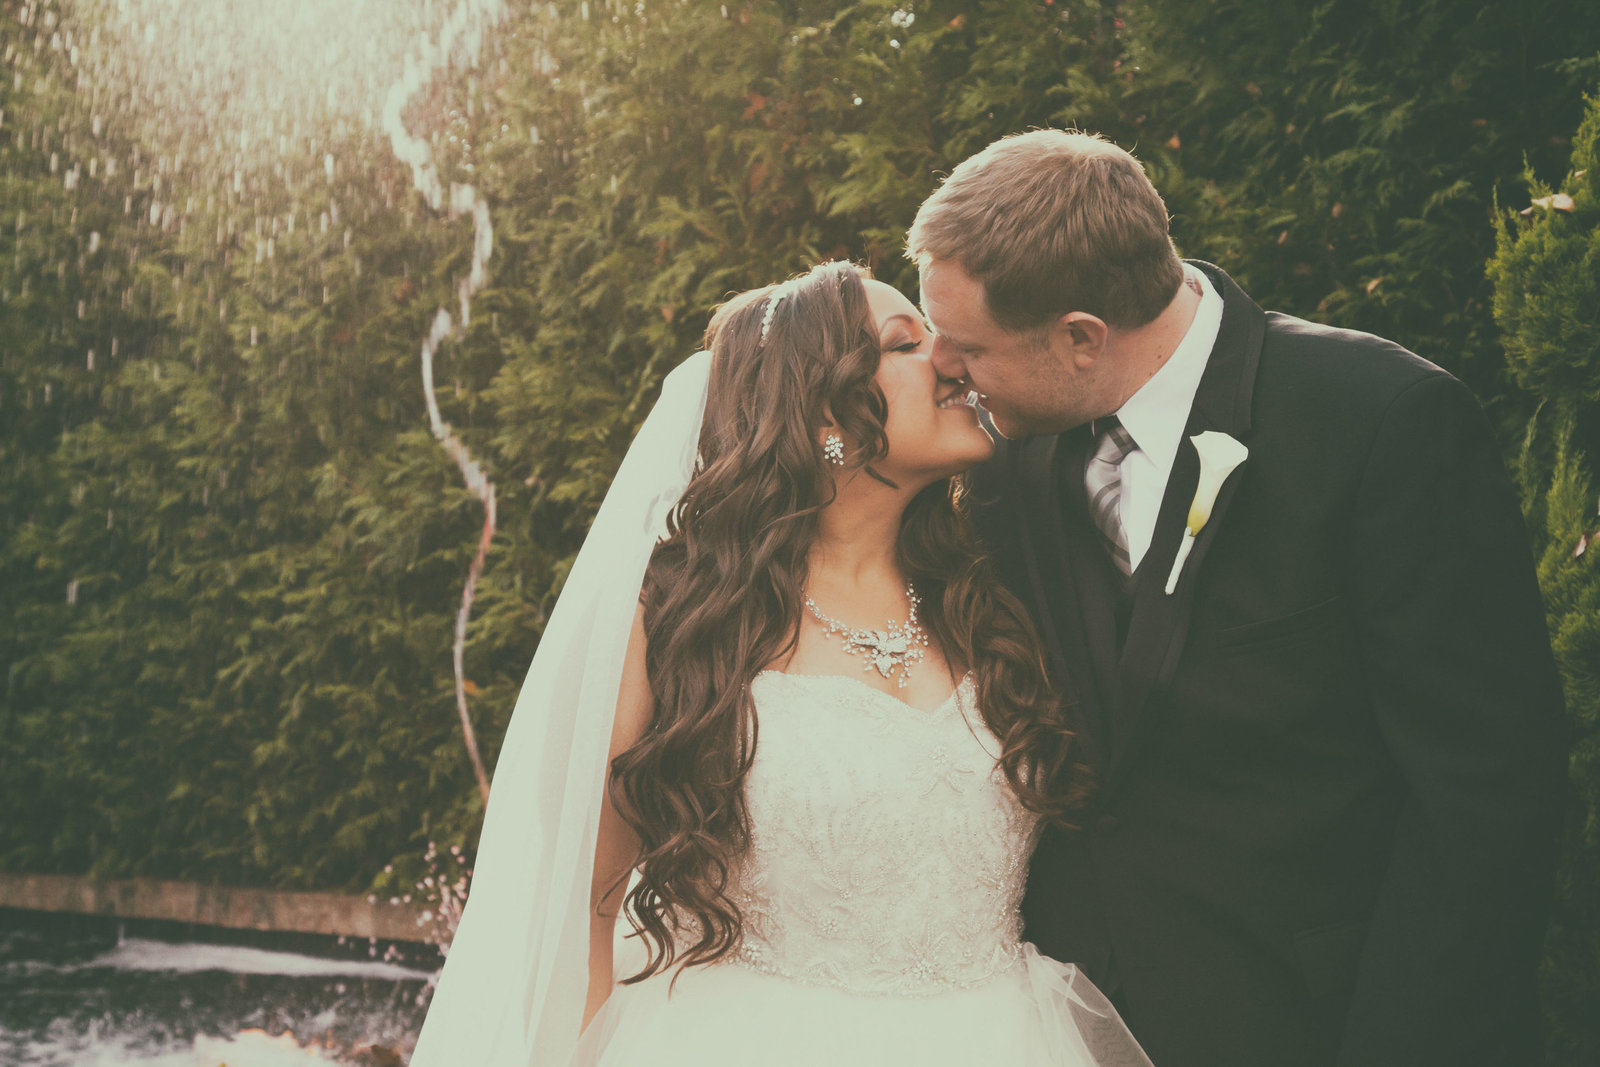 The bride and groom kiss with a fountain in the background.